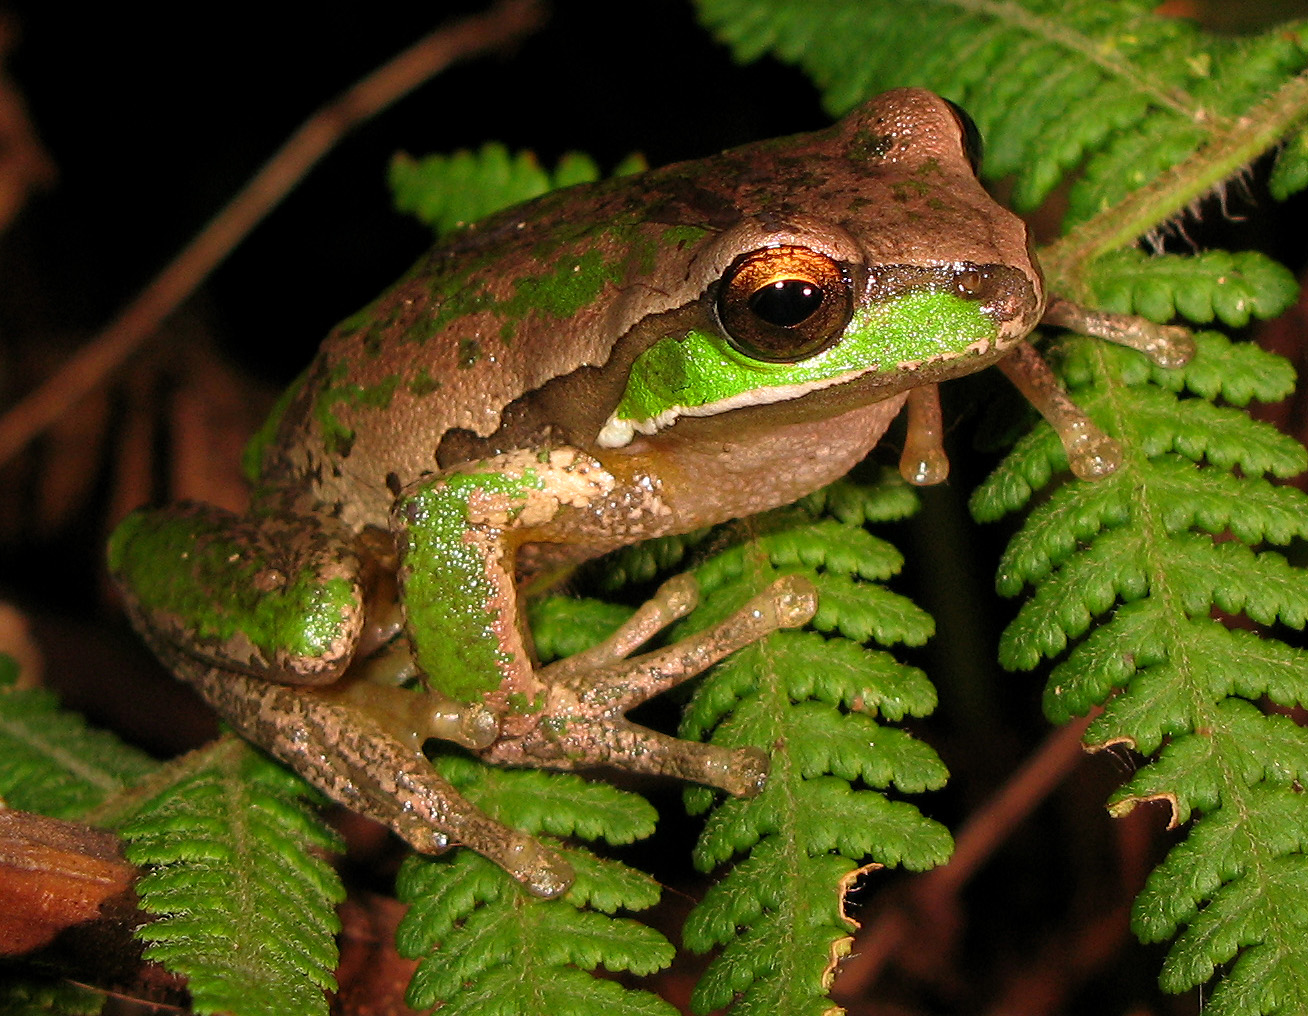 Amphibians: New England Tree Frog